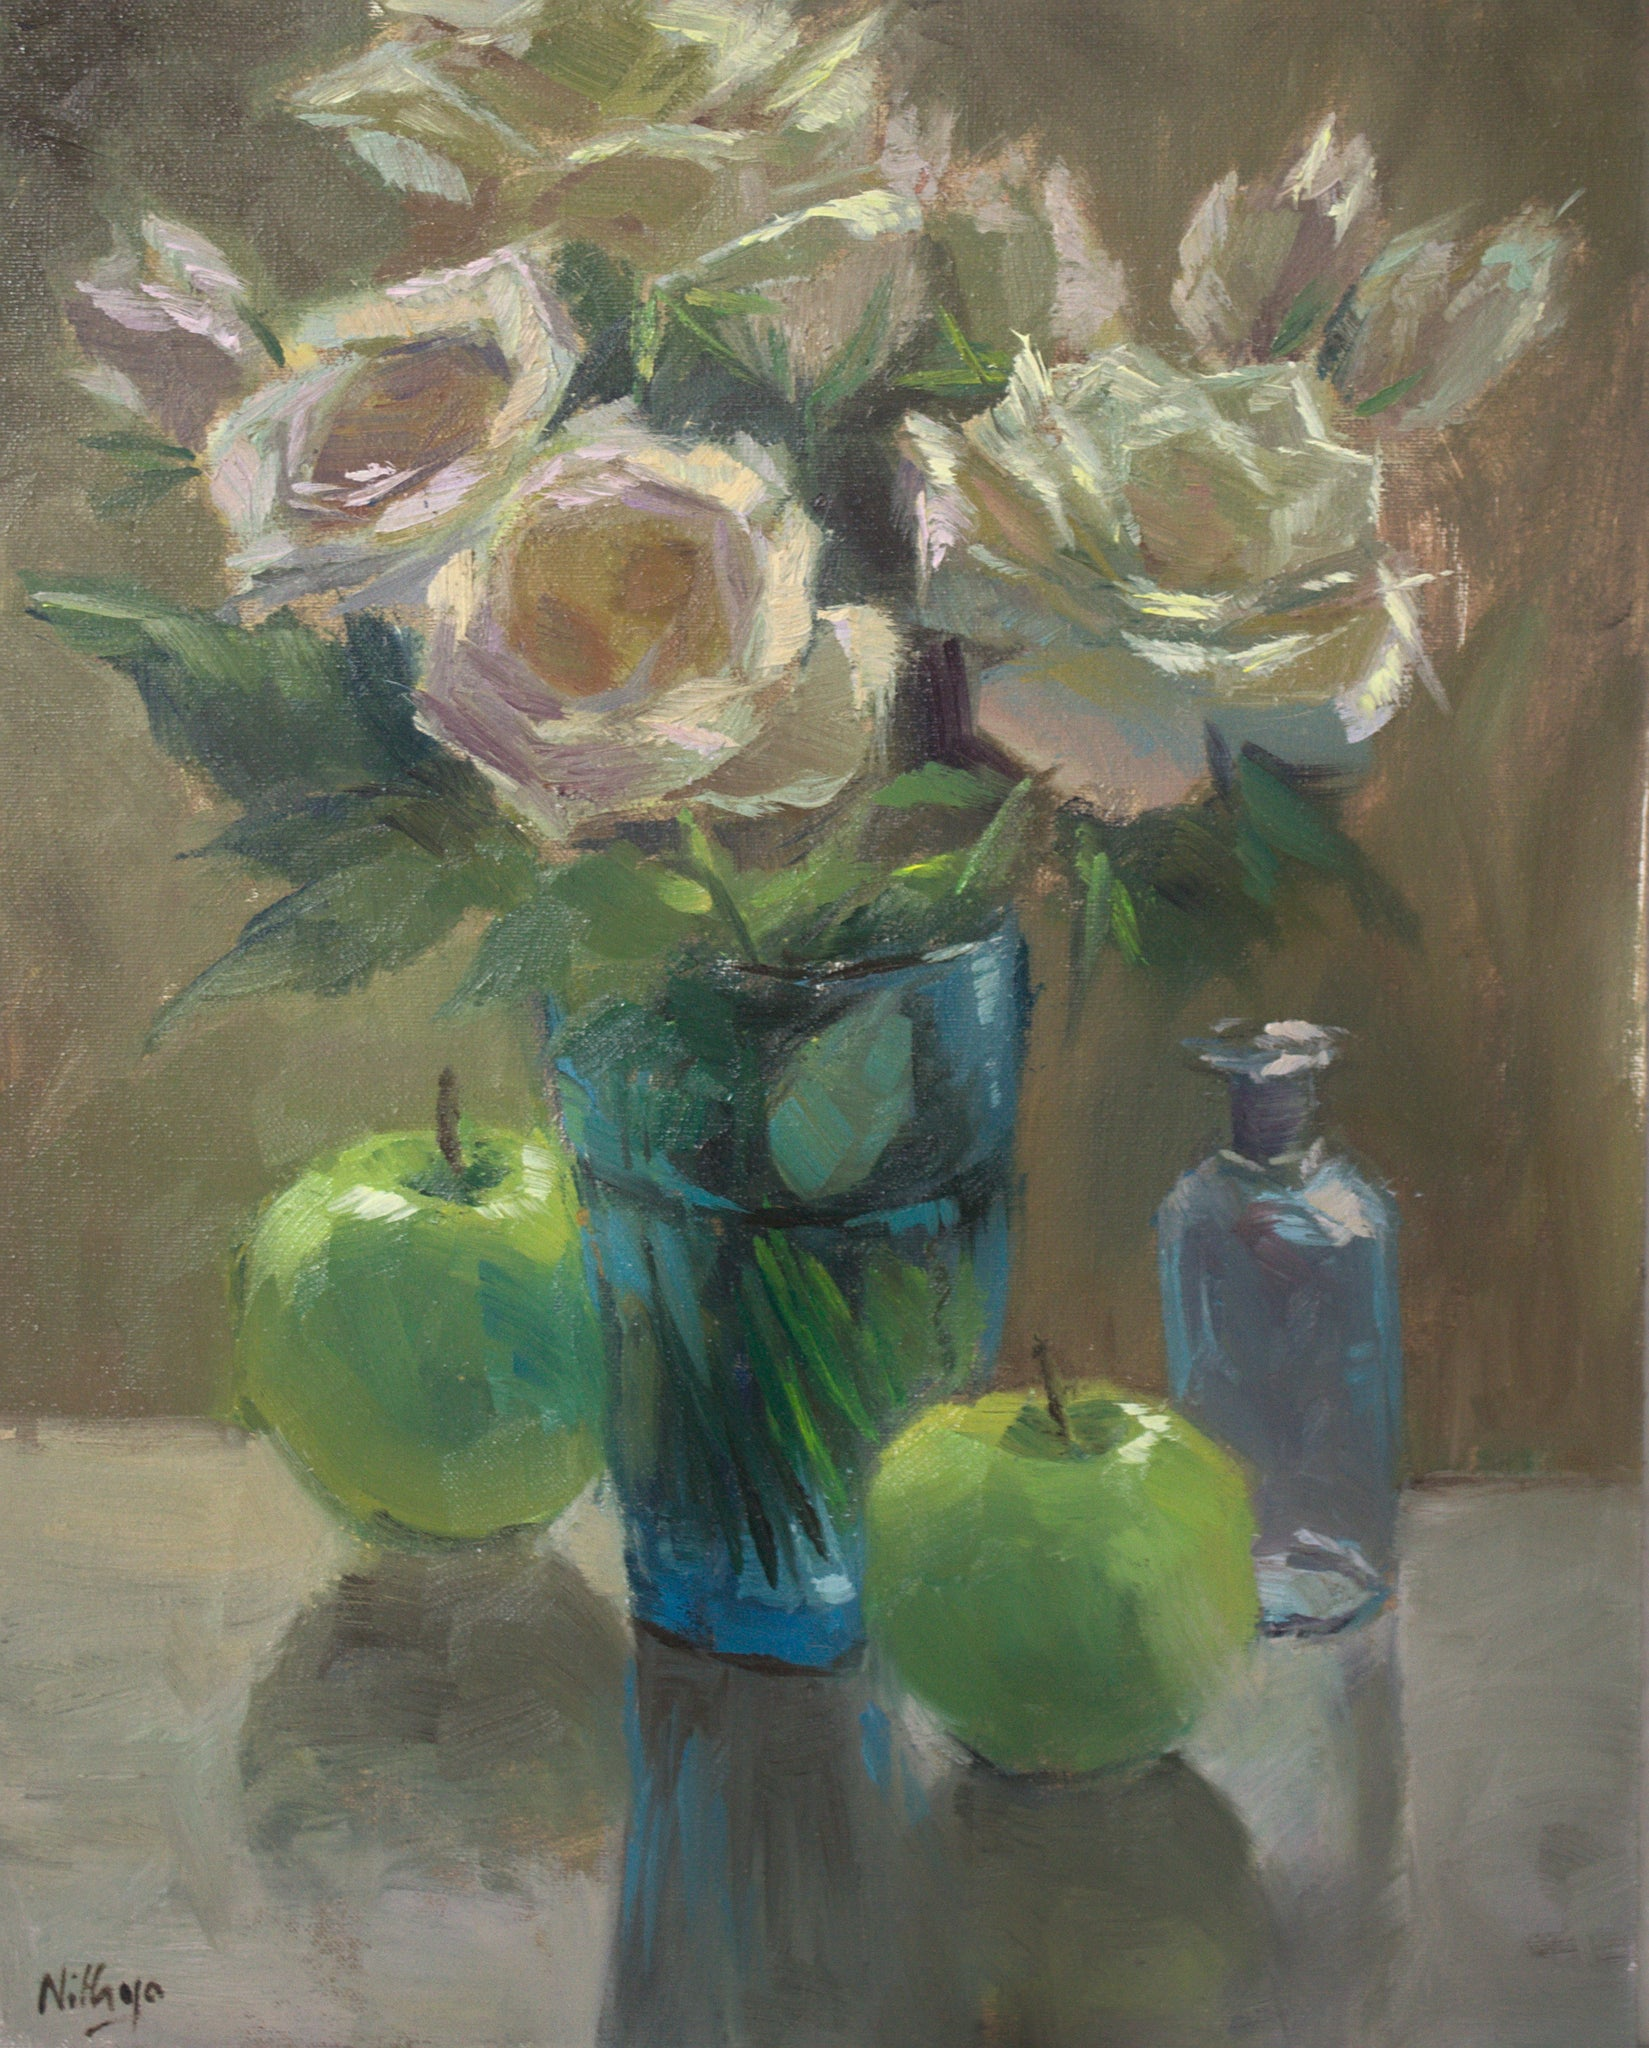 Roses and Apples - Original Oil Painting